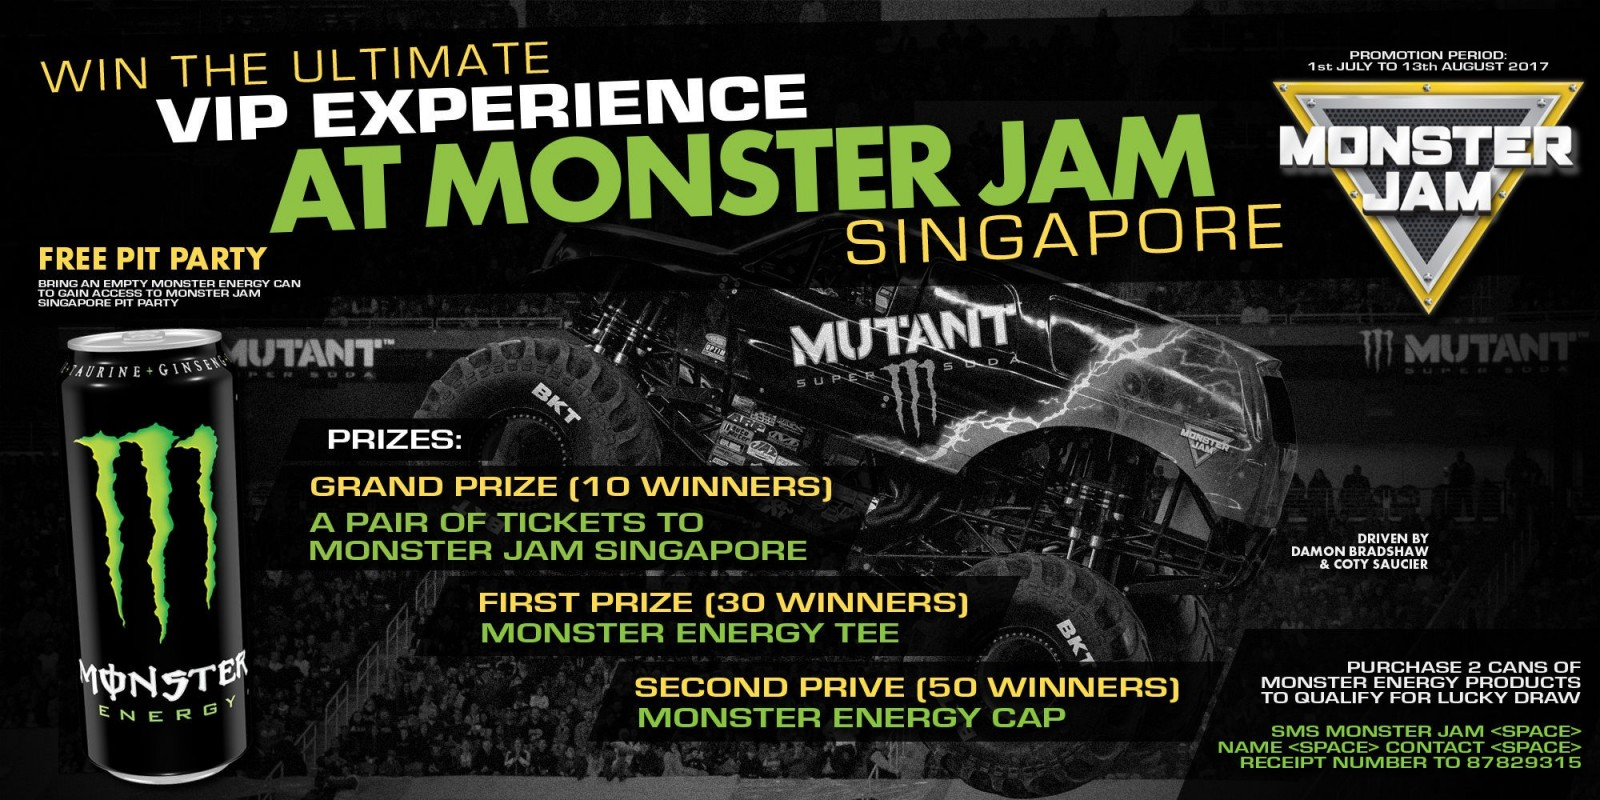 2017 Web Singapore Monster Jam PROMO